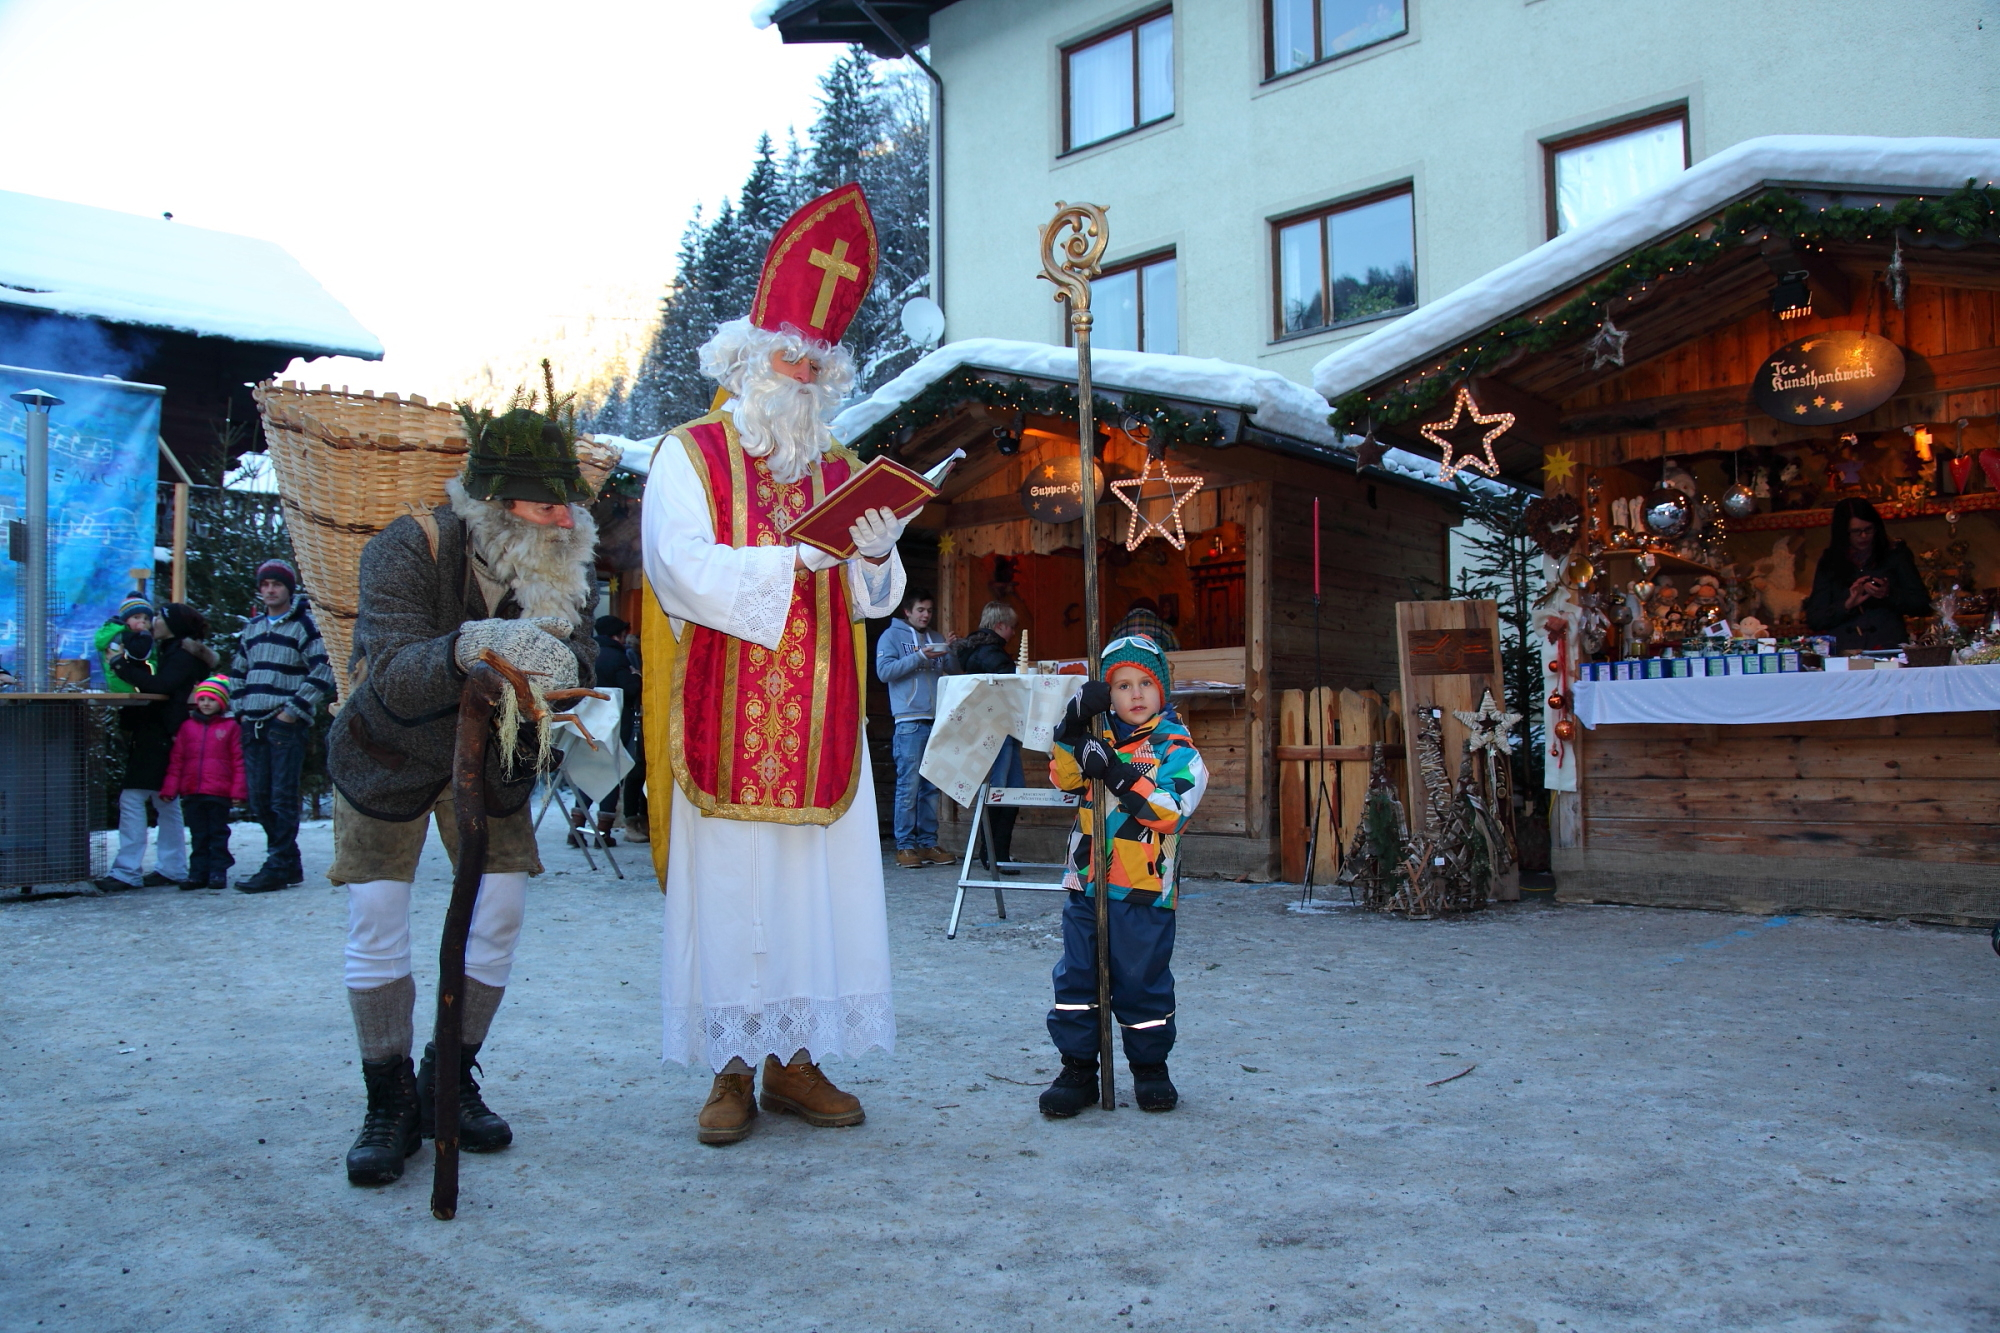 Nikolaus am Adventmarkt in Großarl